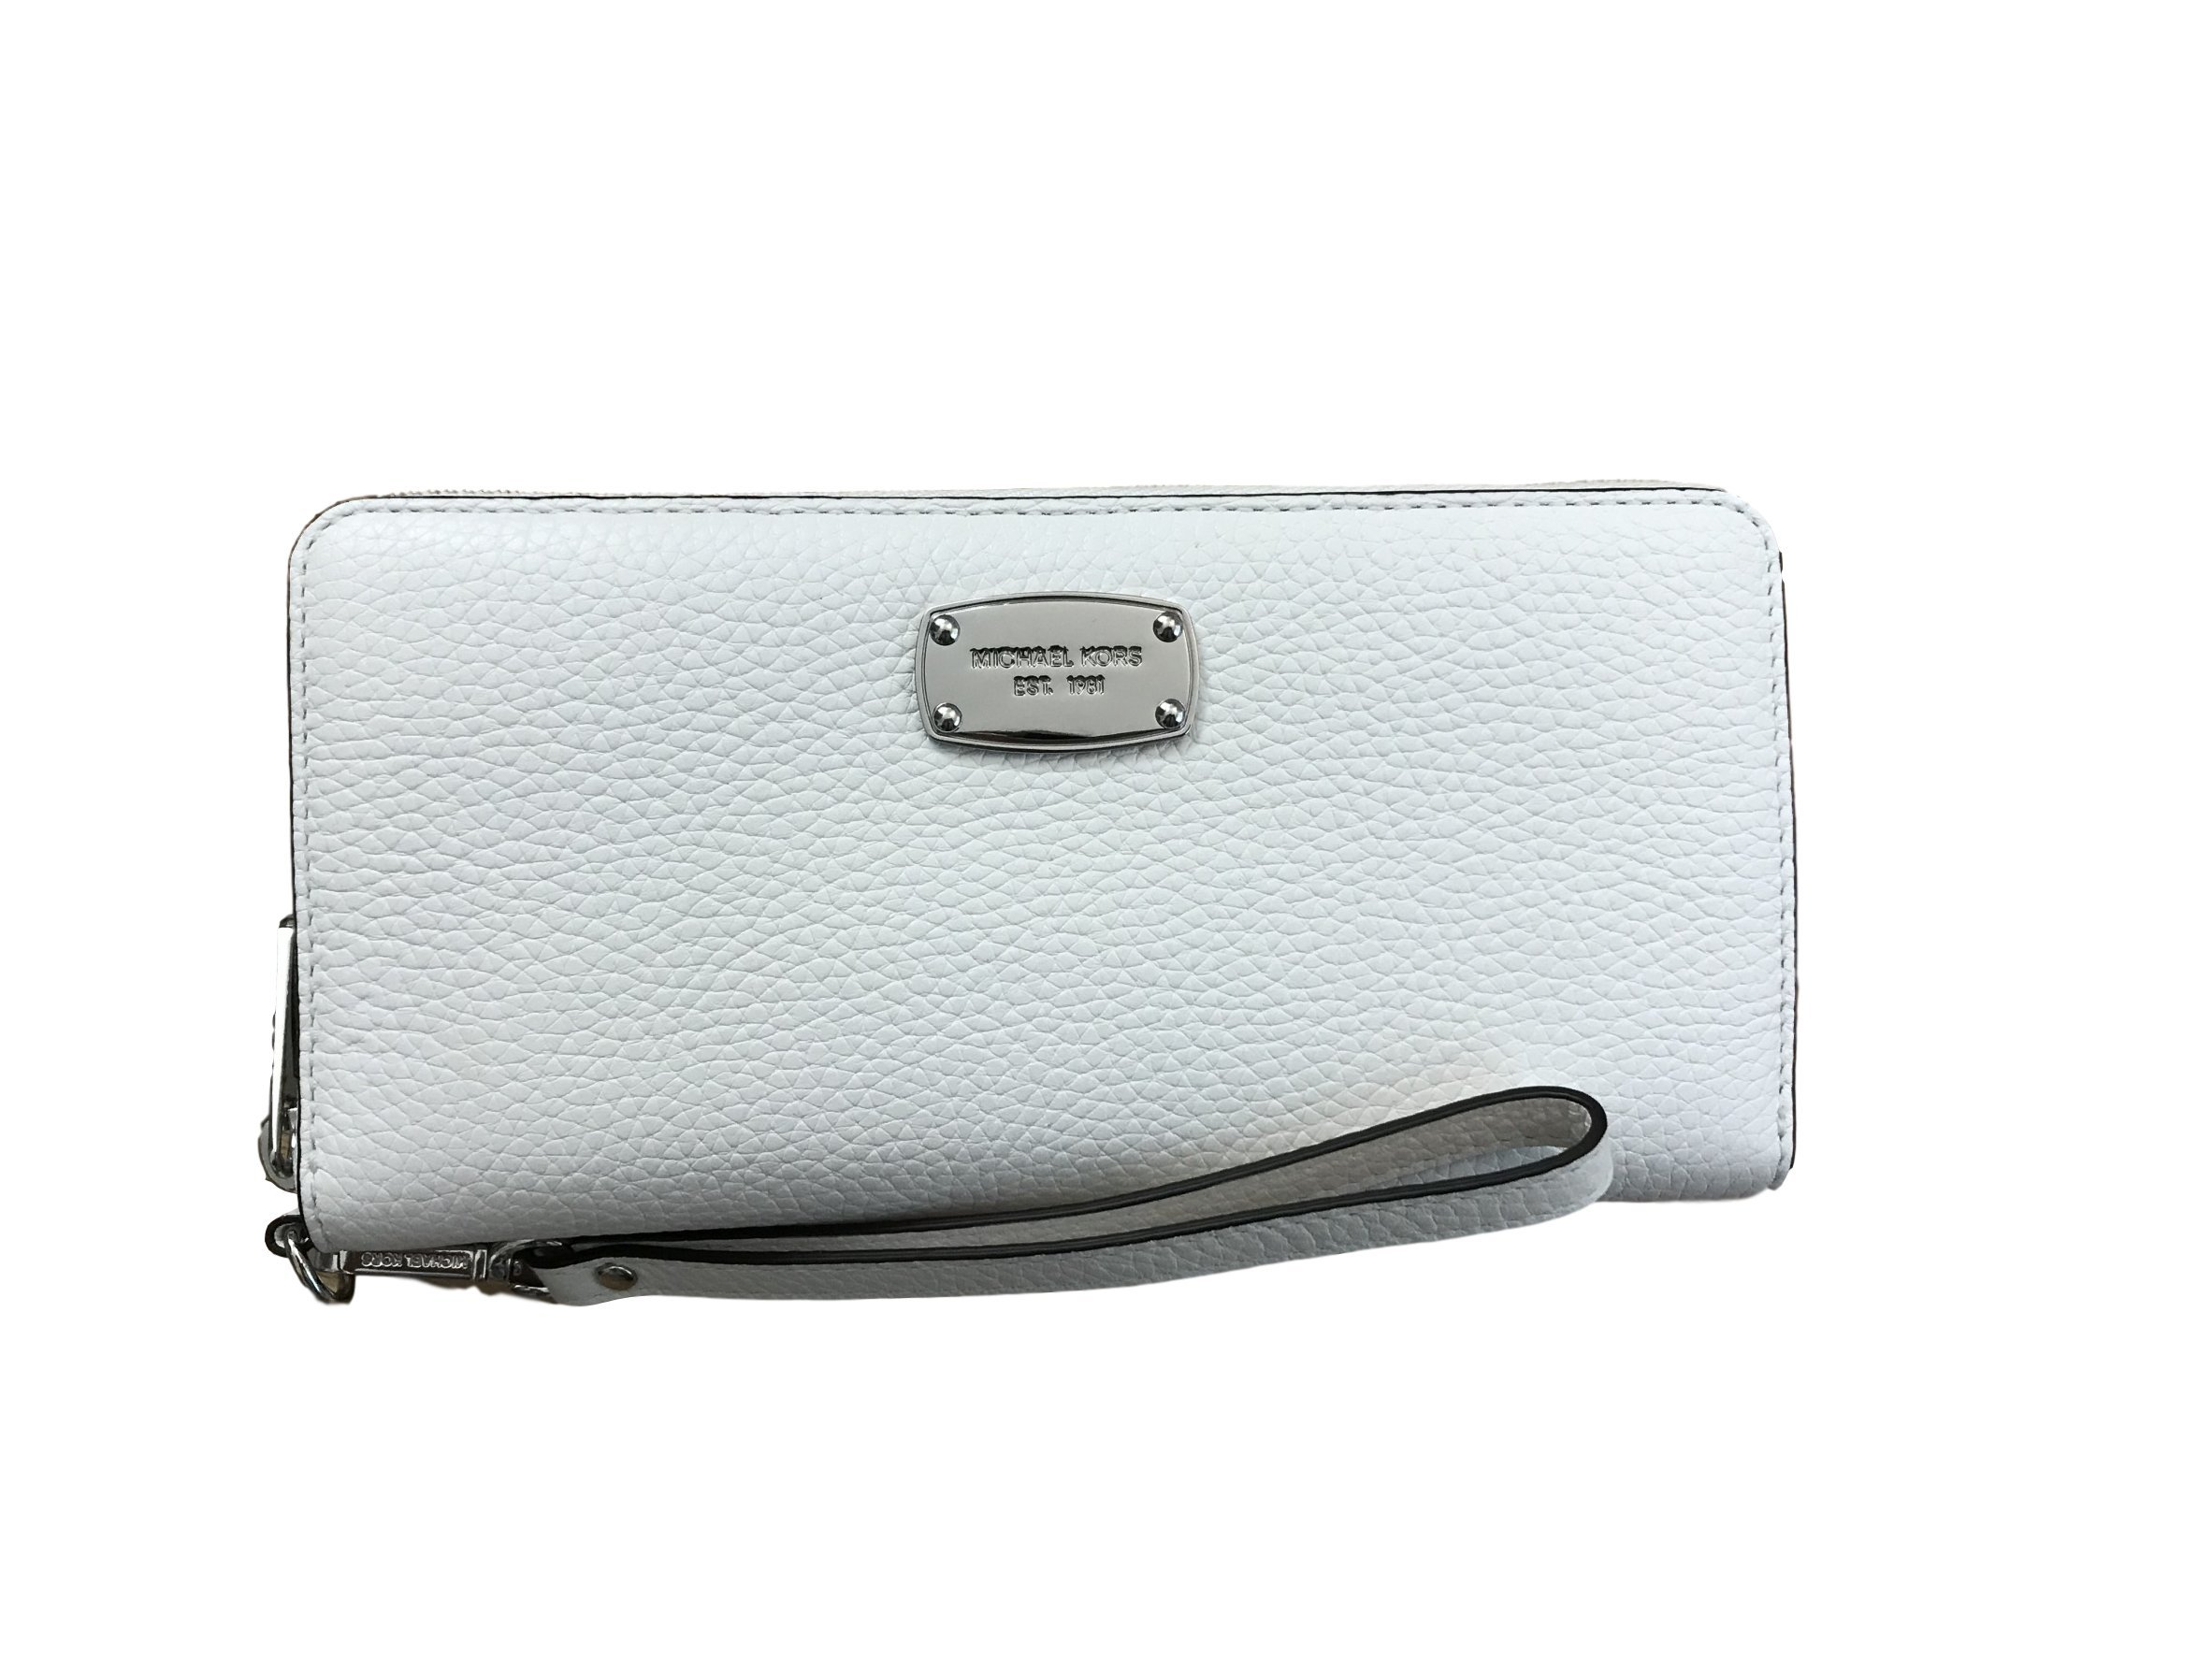 Michael Kors Jet Set Item Leather Travel Continental Zip Around Wallet/wristlet White